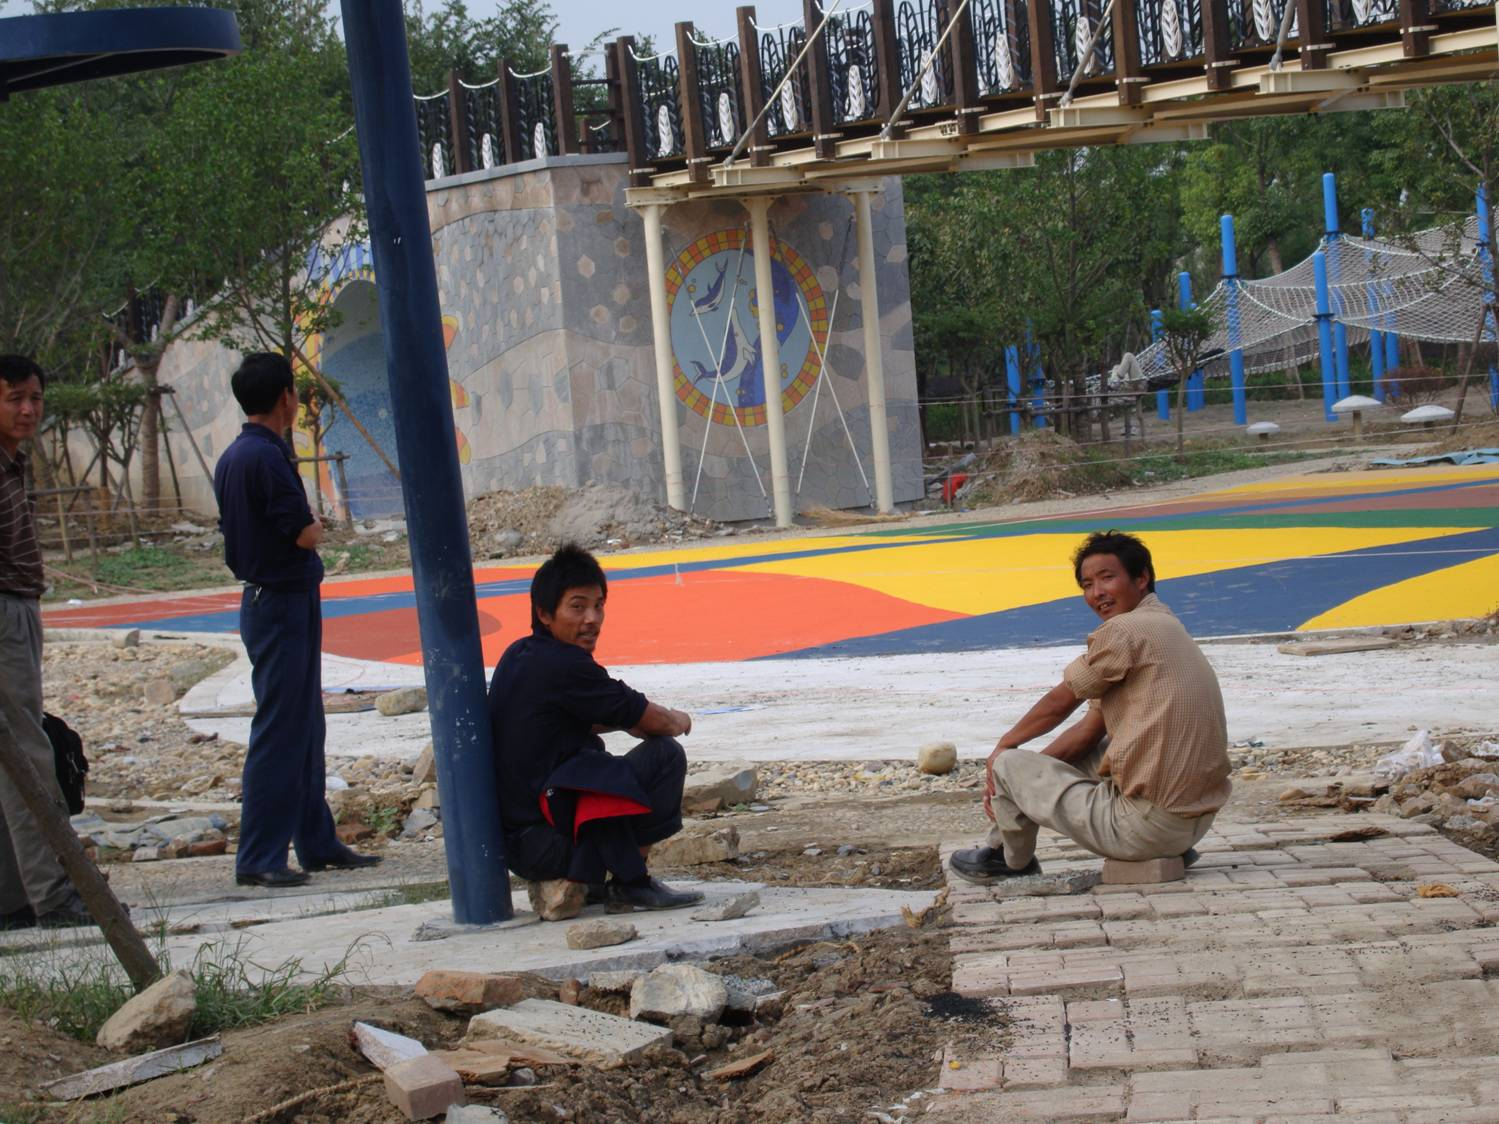 Workmen take a break from building the children's play area,  Taihu Park,  Wuxi, China